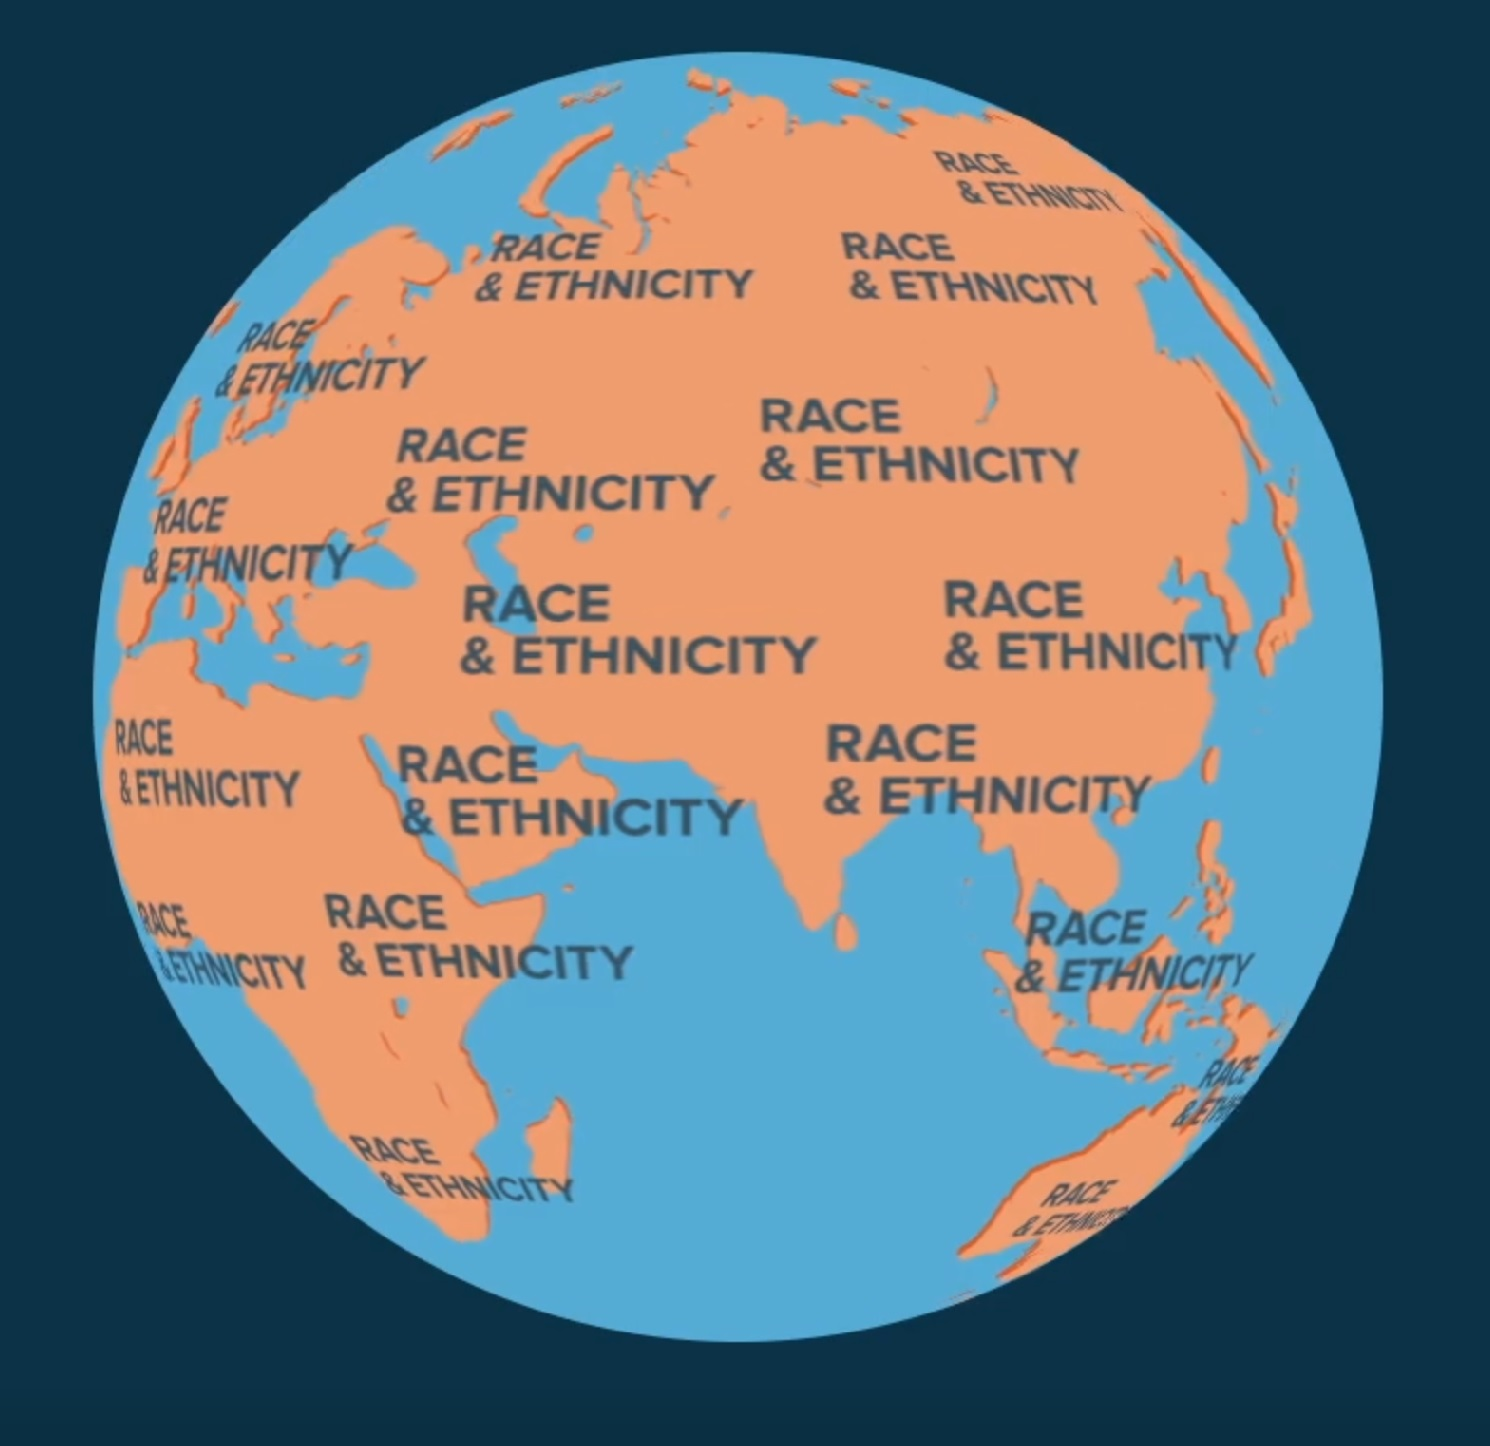 2020-10-10 Race and Ethnicity